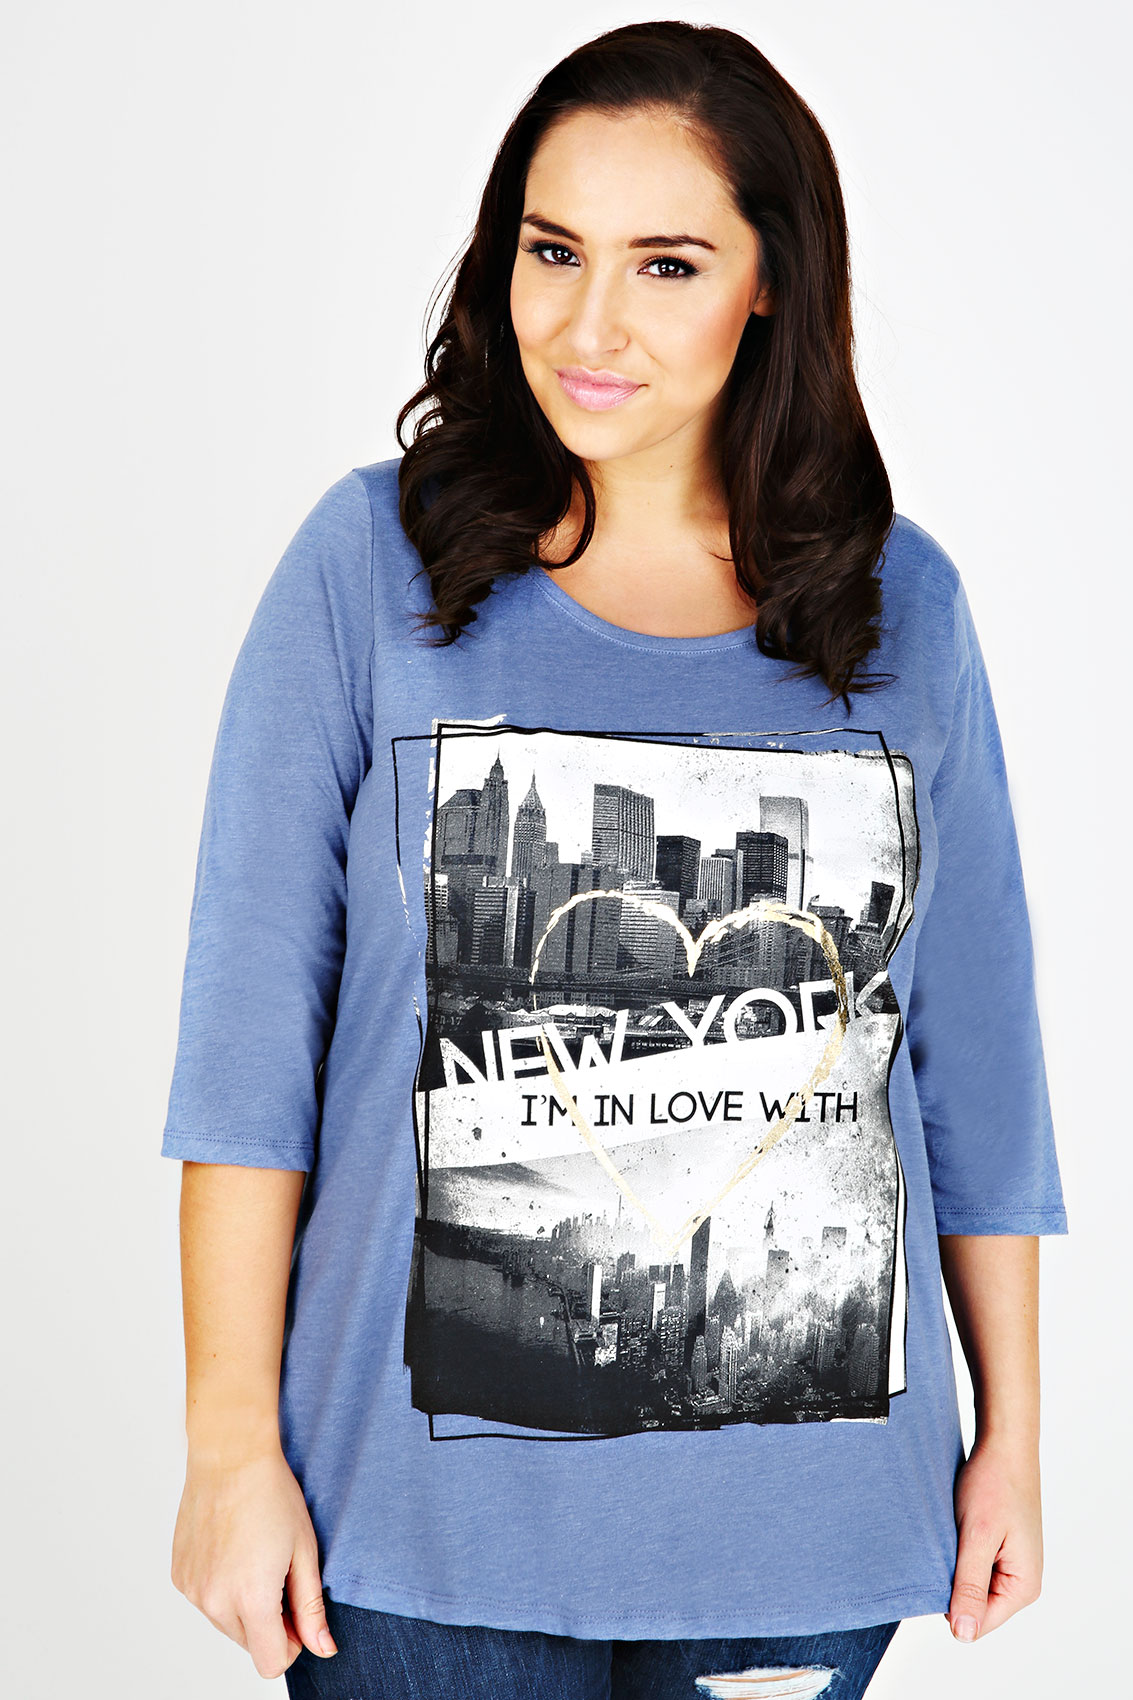 Blue marl 39 new york 39 print half sleeve t shirt plus size for New york printed t shirts